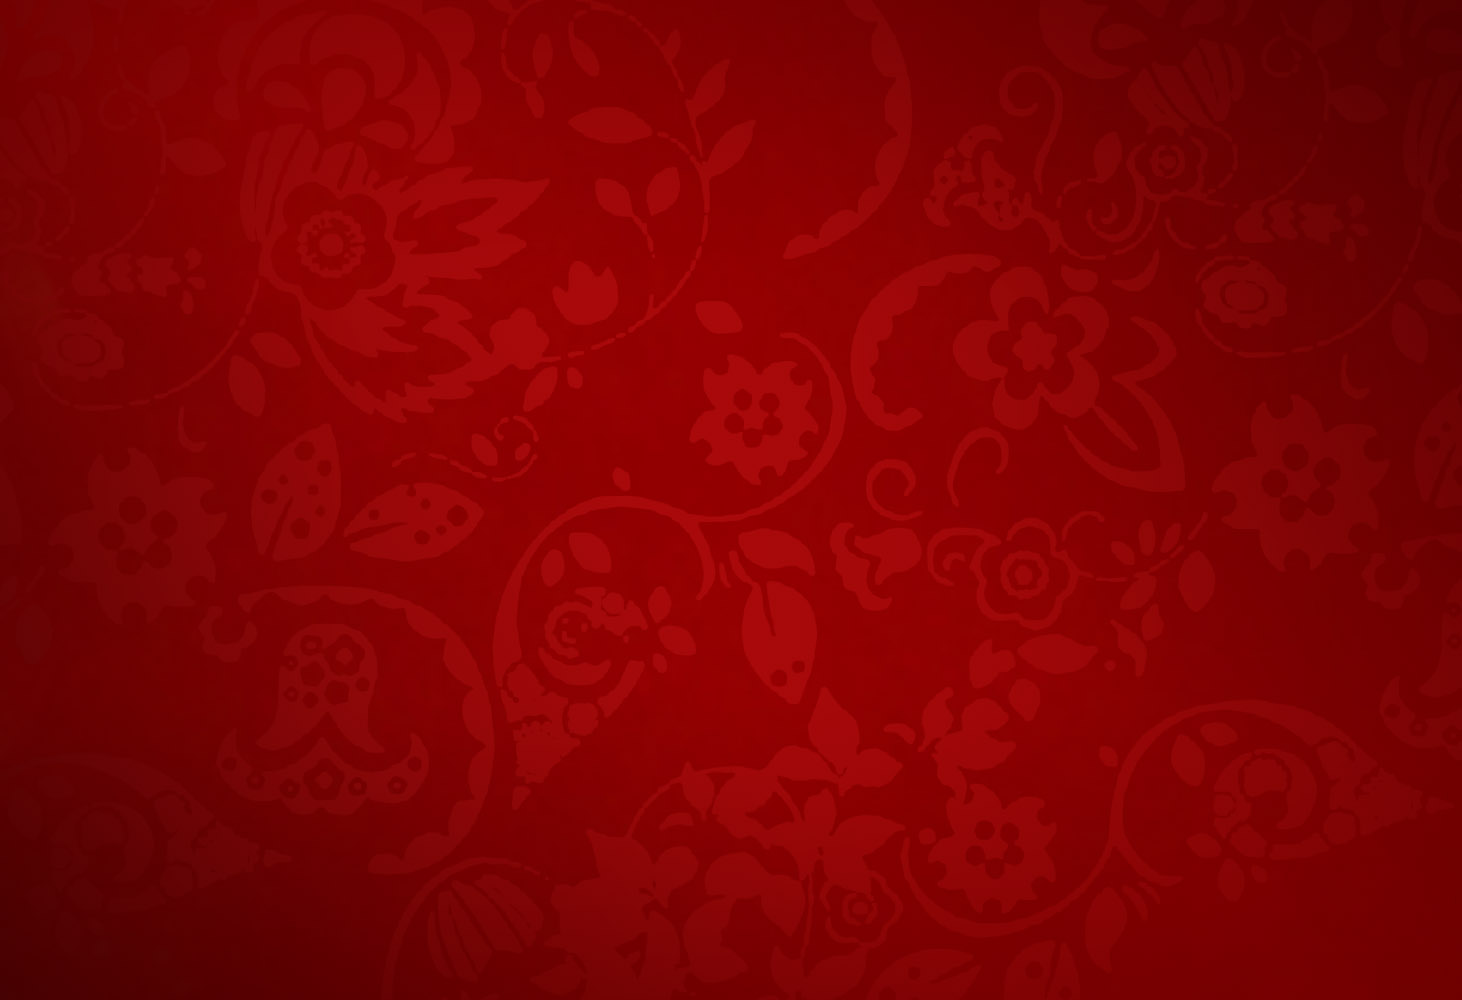 Chinese New Year Red Background   Graphics Download 1462x1000